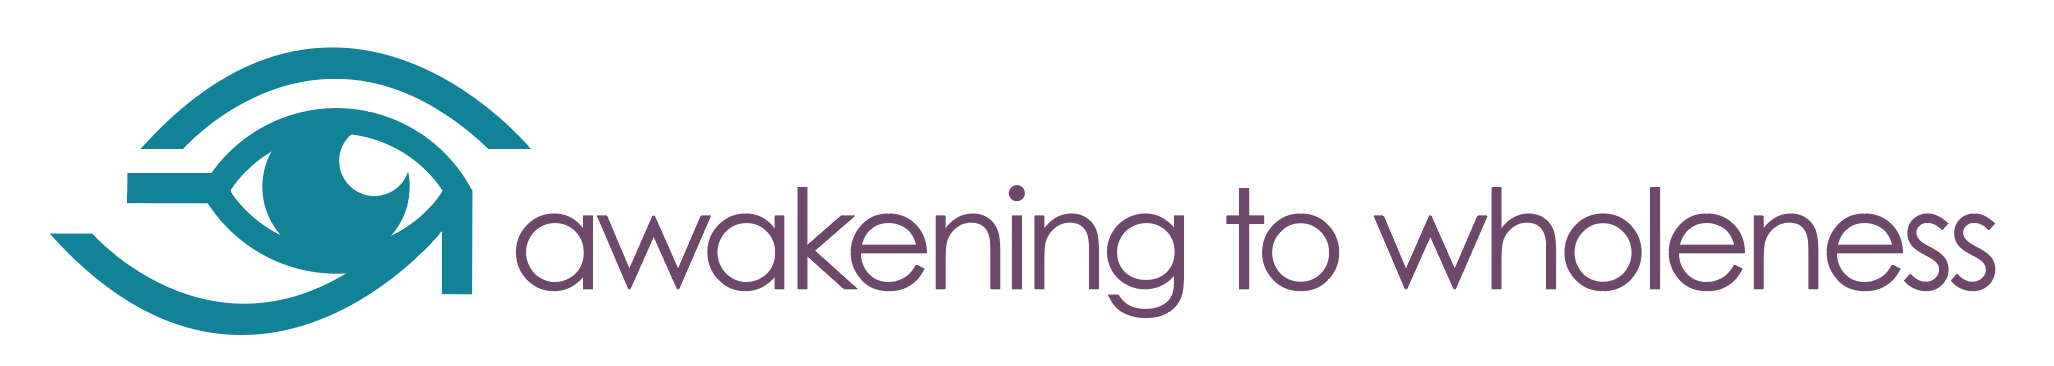 Awakening to Wholeness Retina Logo